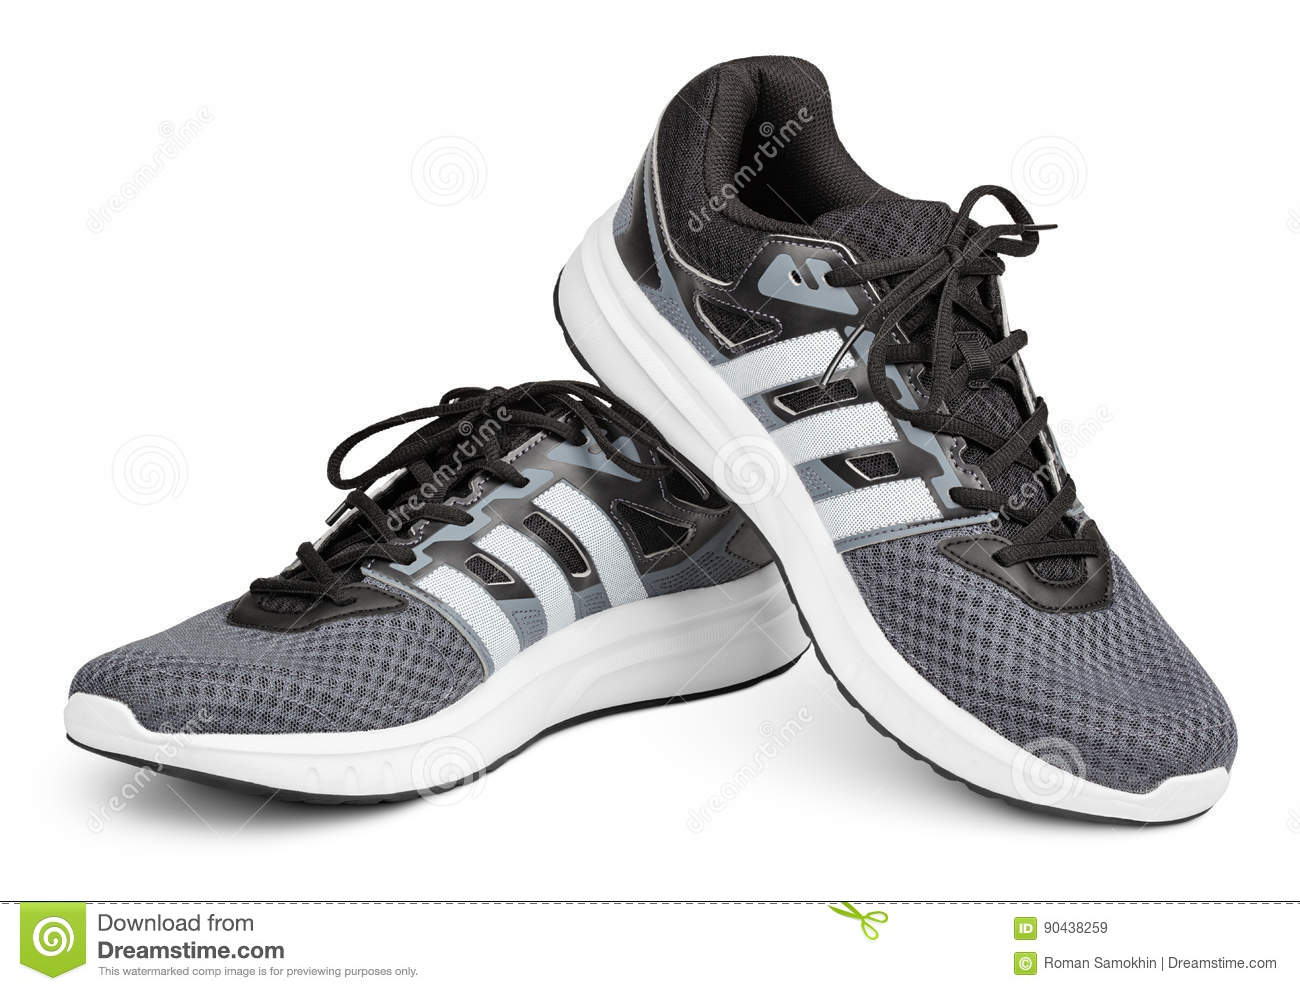 a6acb6d3e082 Adidas Running Shoes